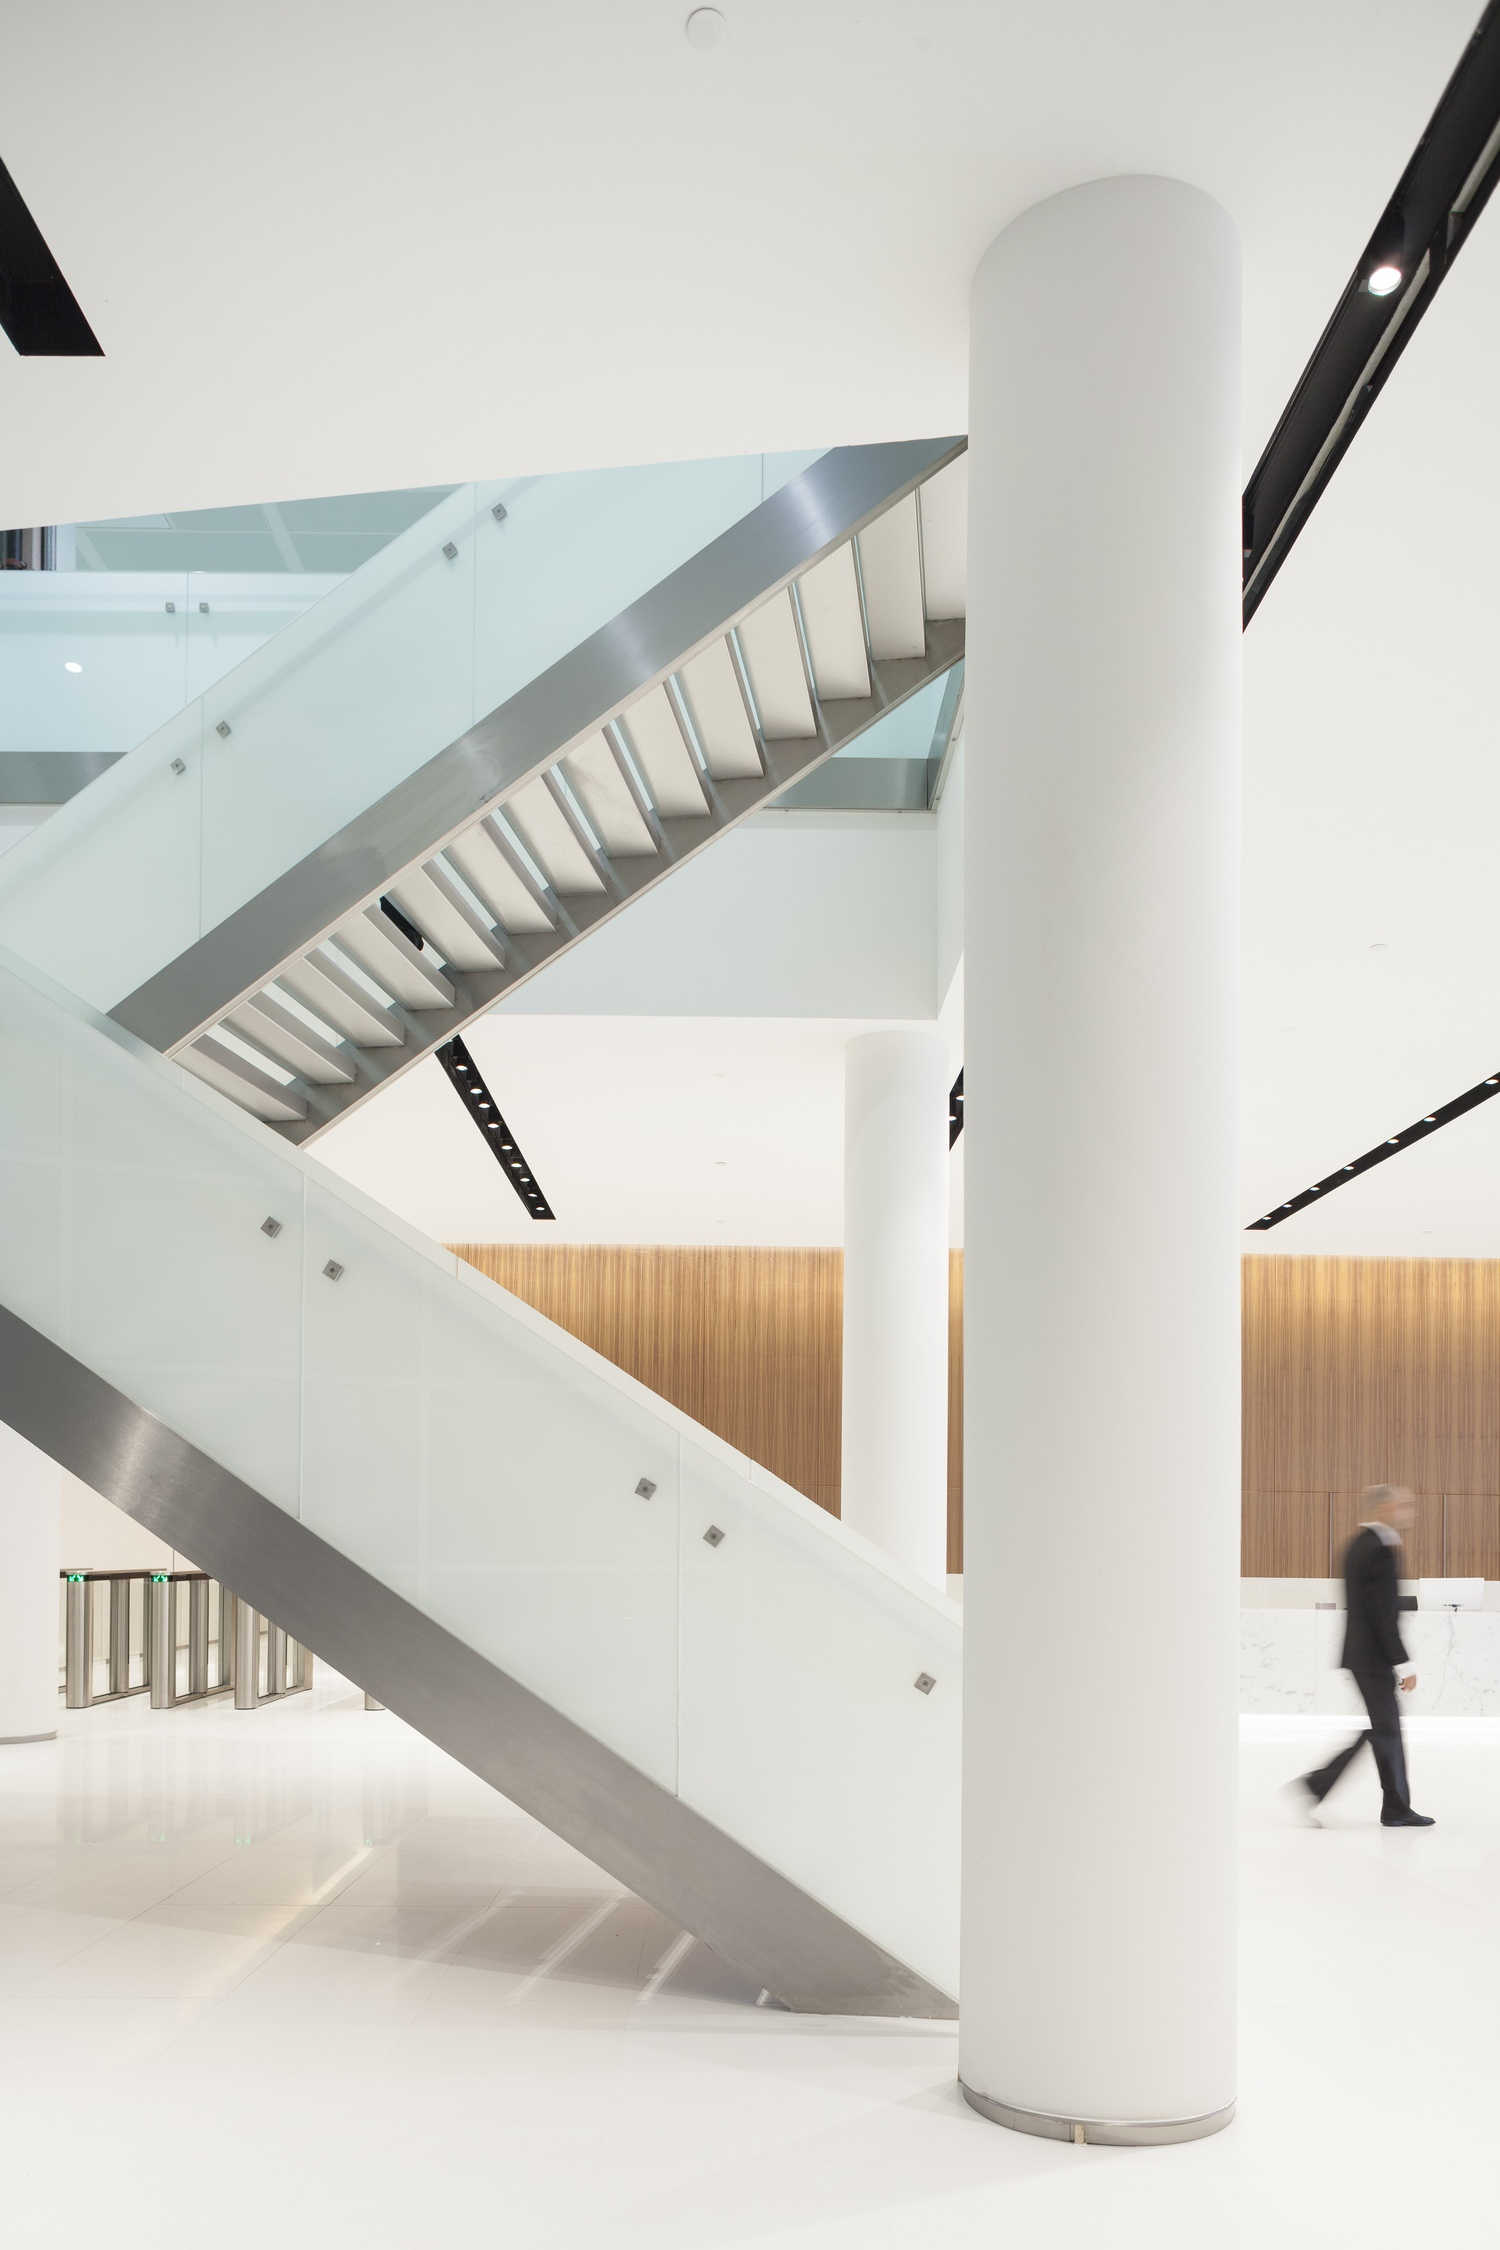 A staircase that leads up from a lobby to another level and there are large white pillars next to it.